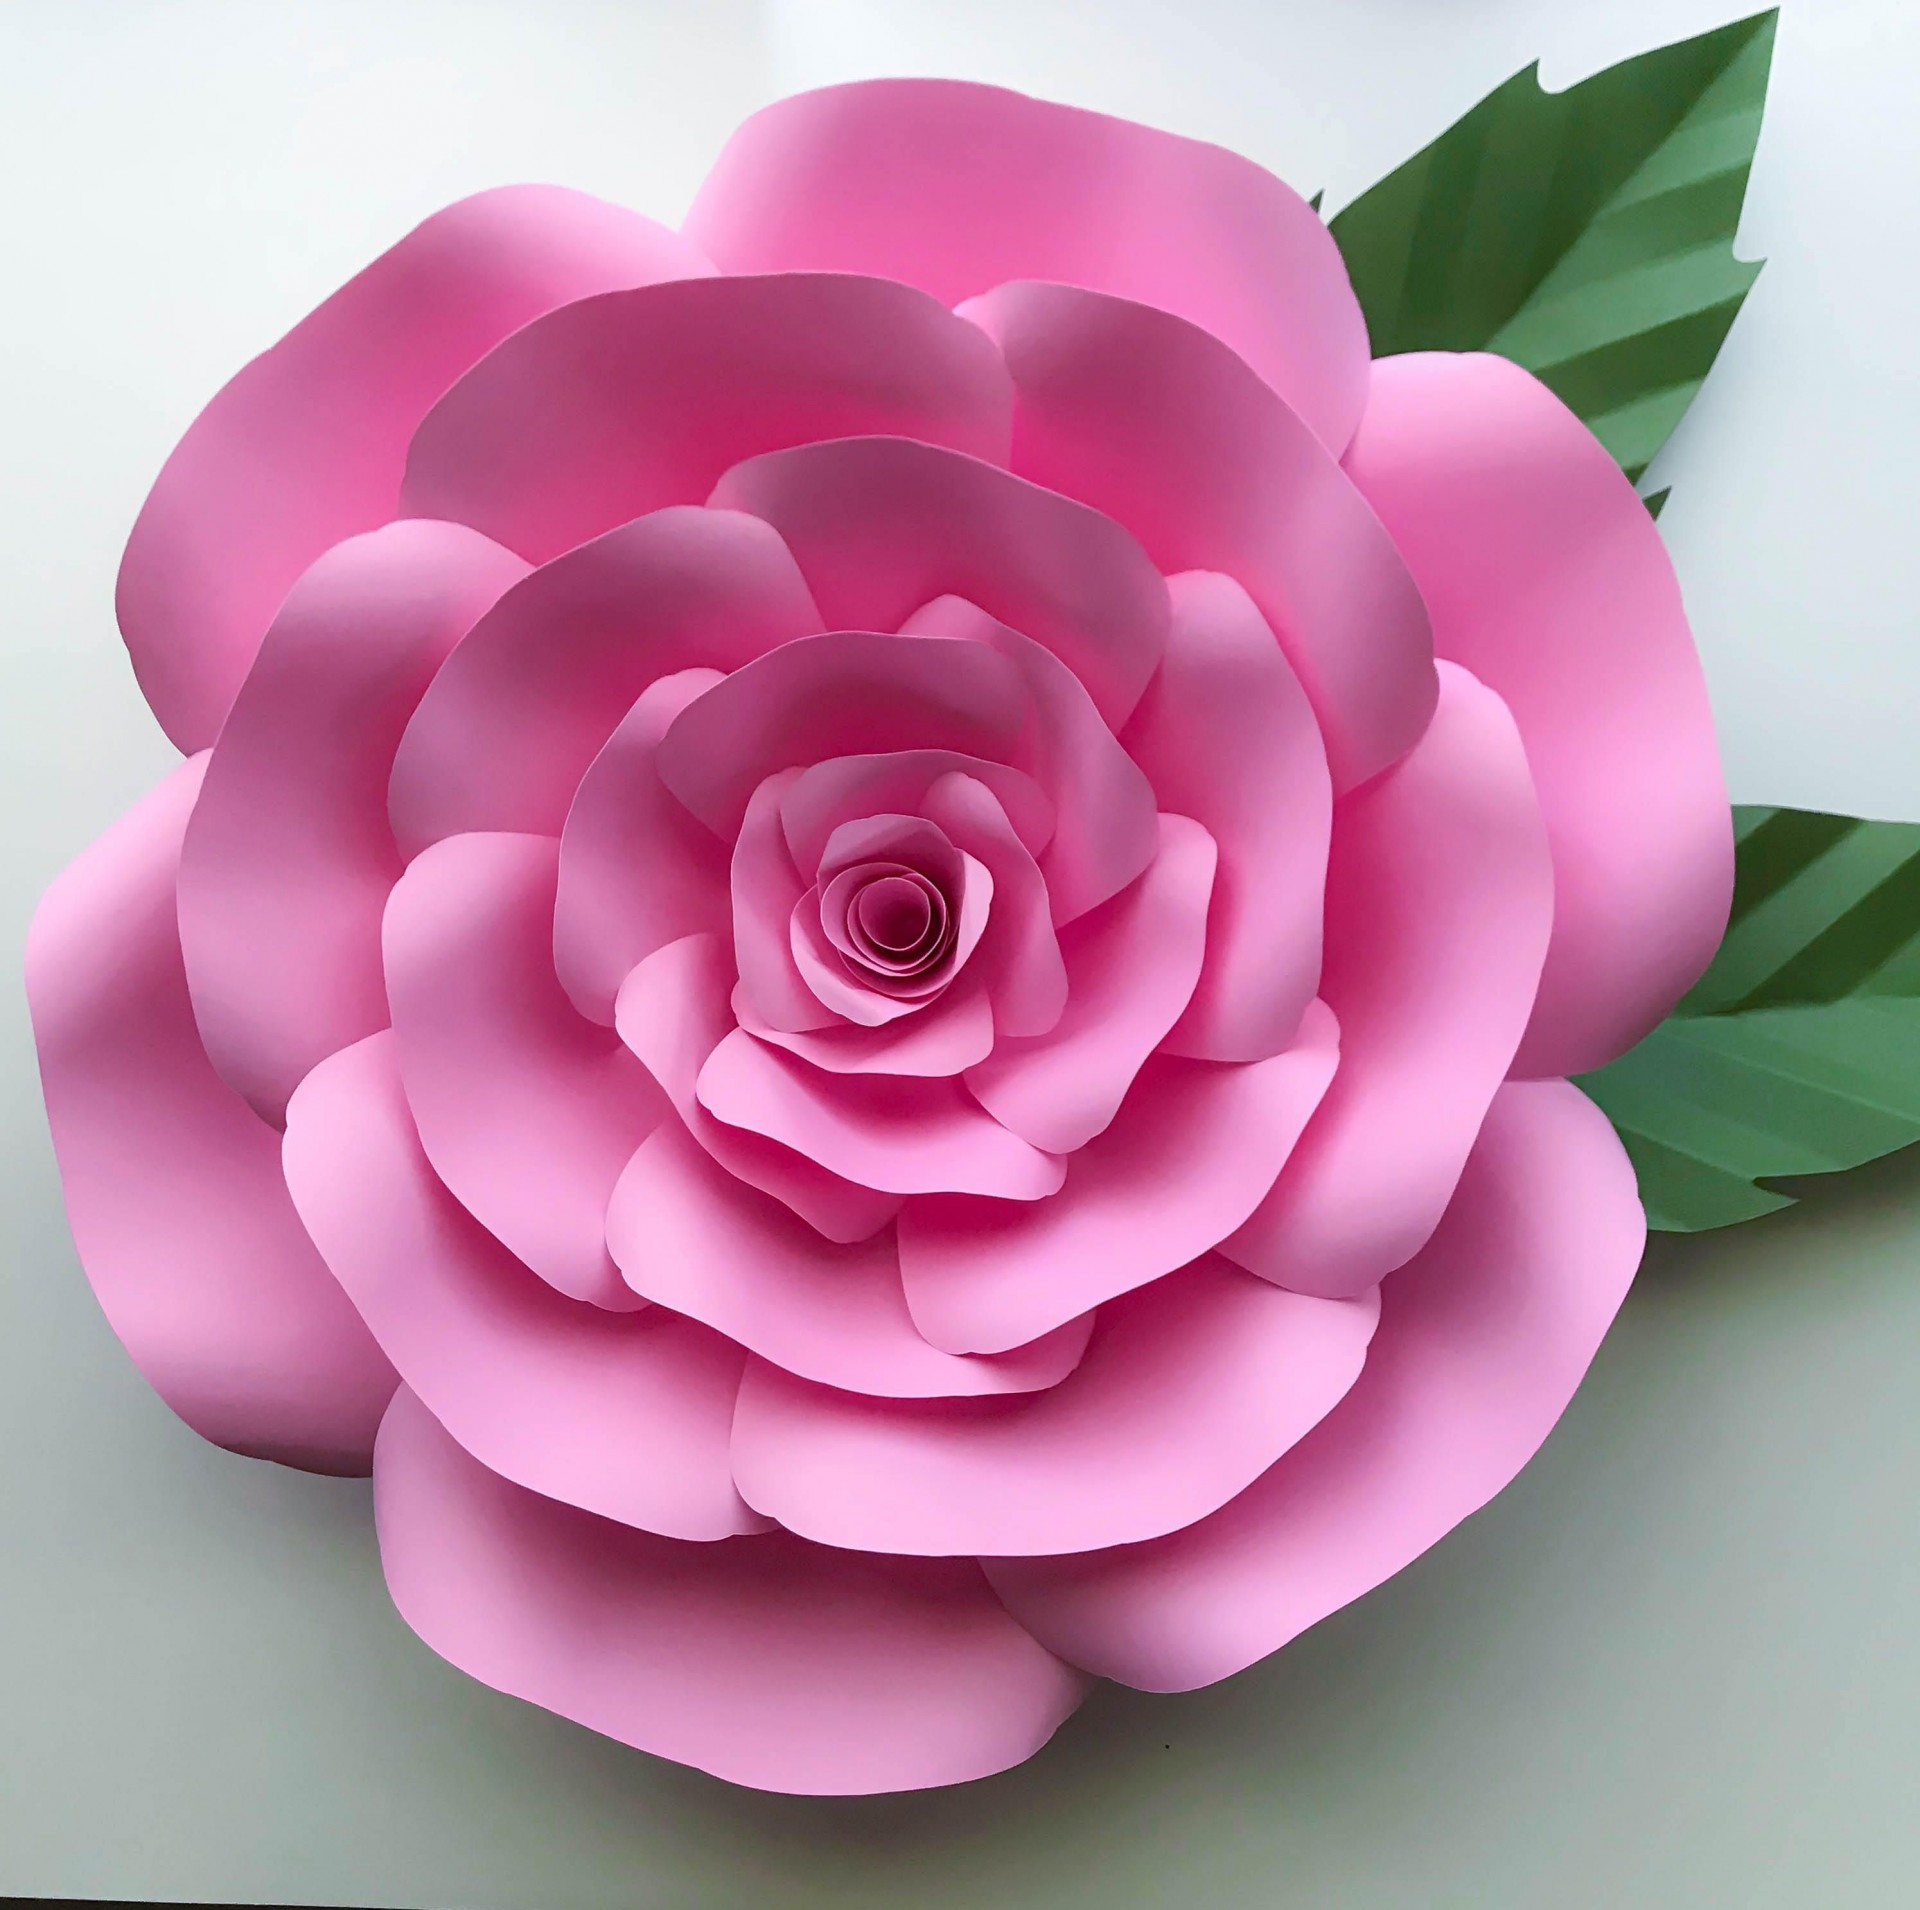 001 Astounding Paper Rose Template Pdf High Def  Flower Giant Free Crepe1920